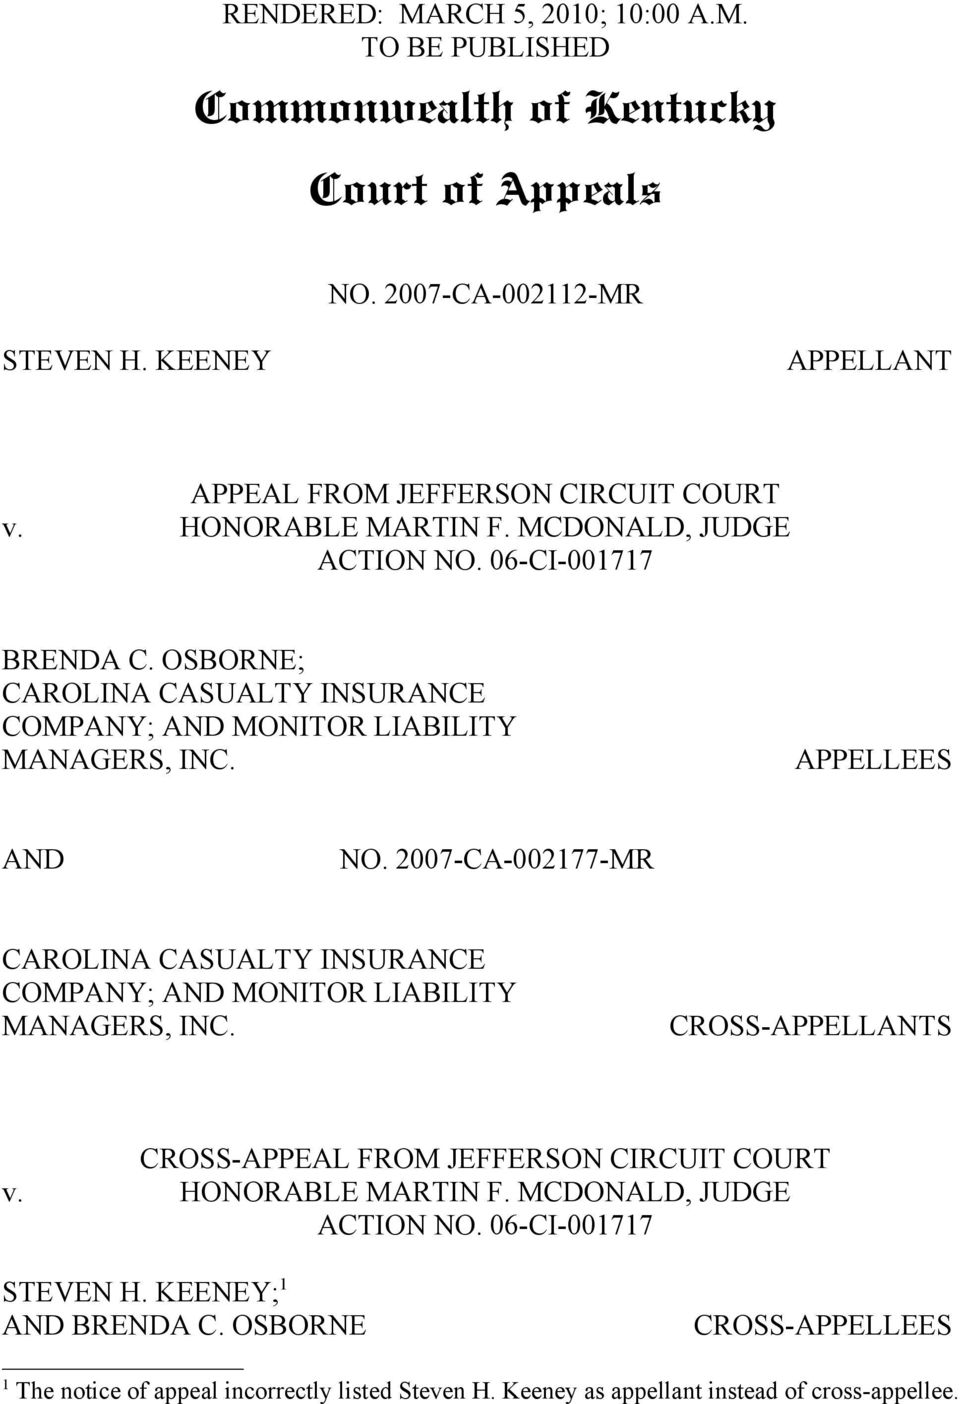 2007-CA-002177-MR CAROLINA CASUALTY INSURANCE COMPANY; AND MONITOR LIABILITY MANAGERS, INC. CROSS-APPELLANTS CROSS-APPEAL FROM JEFFERSON CIRCUIT COURT v. HONORABLE MARTIN F.